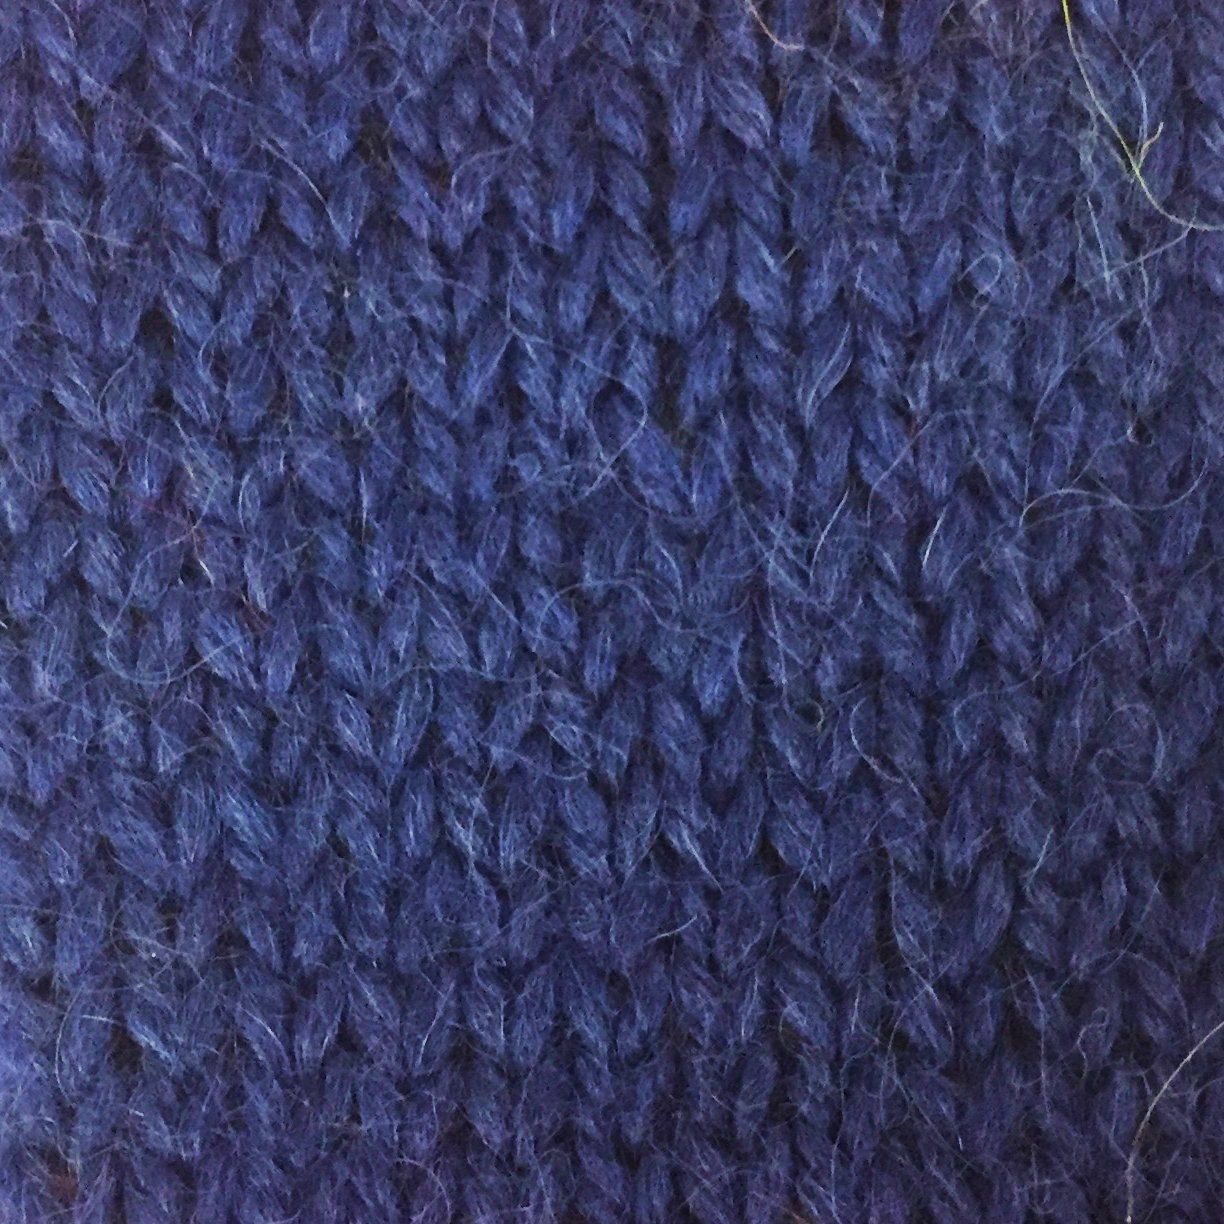 Snuggle Bulky Alpaca Blend Yarn - Dockside